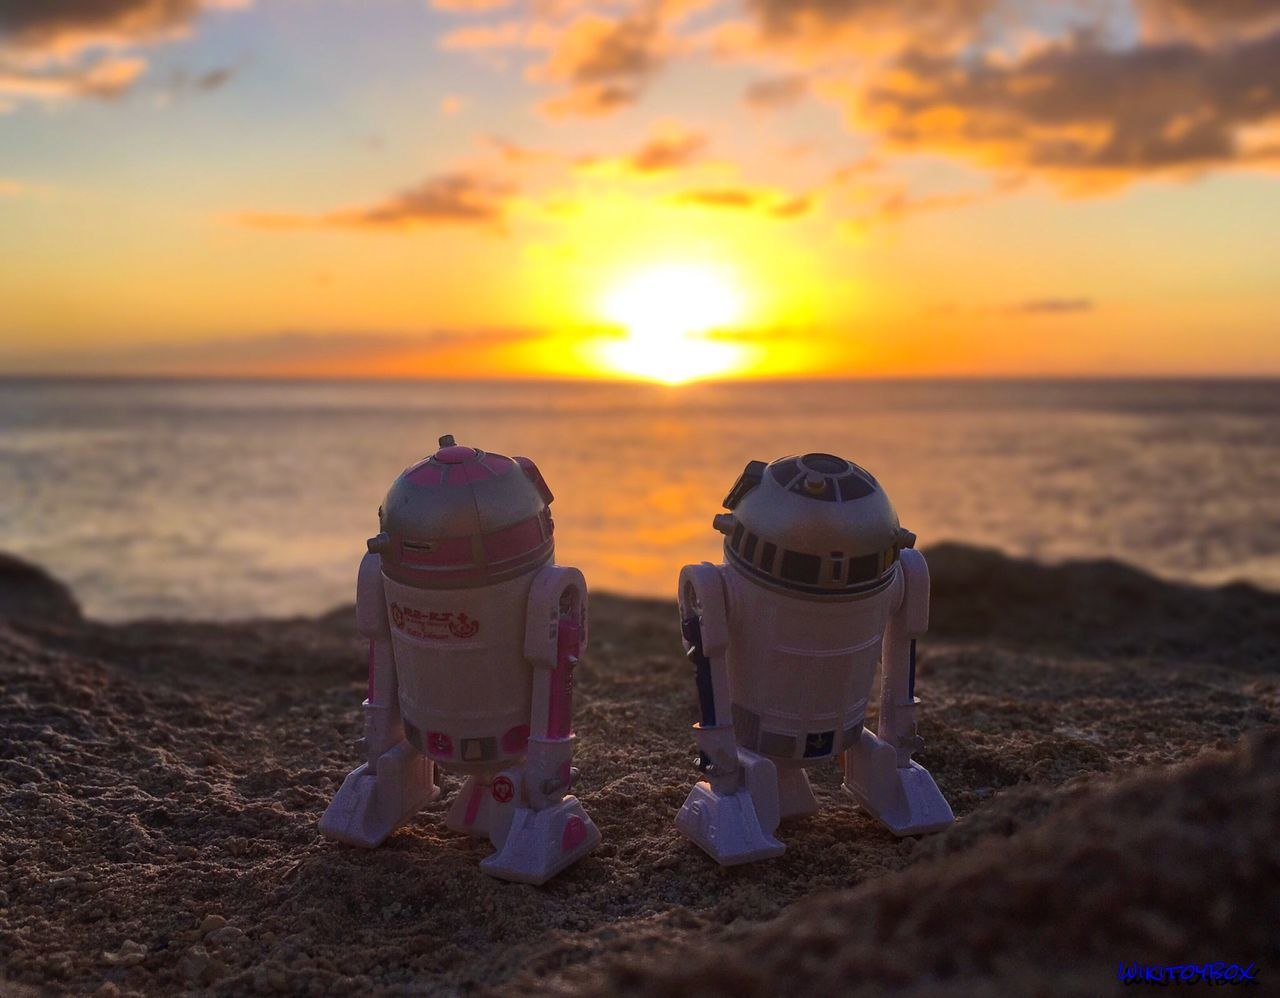 """A Single Chance is a Galaxy of Hope"" -Clone Wars S1E18 ☄ #Maythe4thBewithYou Everyone! Starwars MayThe4thBeWithYou MayTheFourthBeWithYou R2D2 R2KT Disney Hawaii Oahu Sunset Toyphotography"